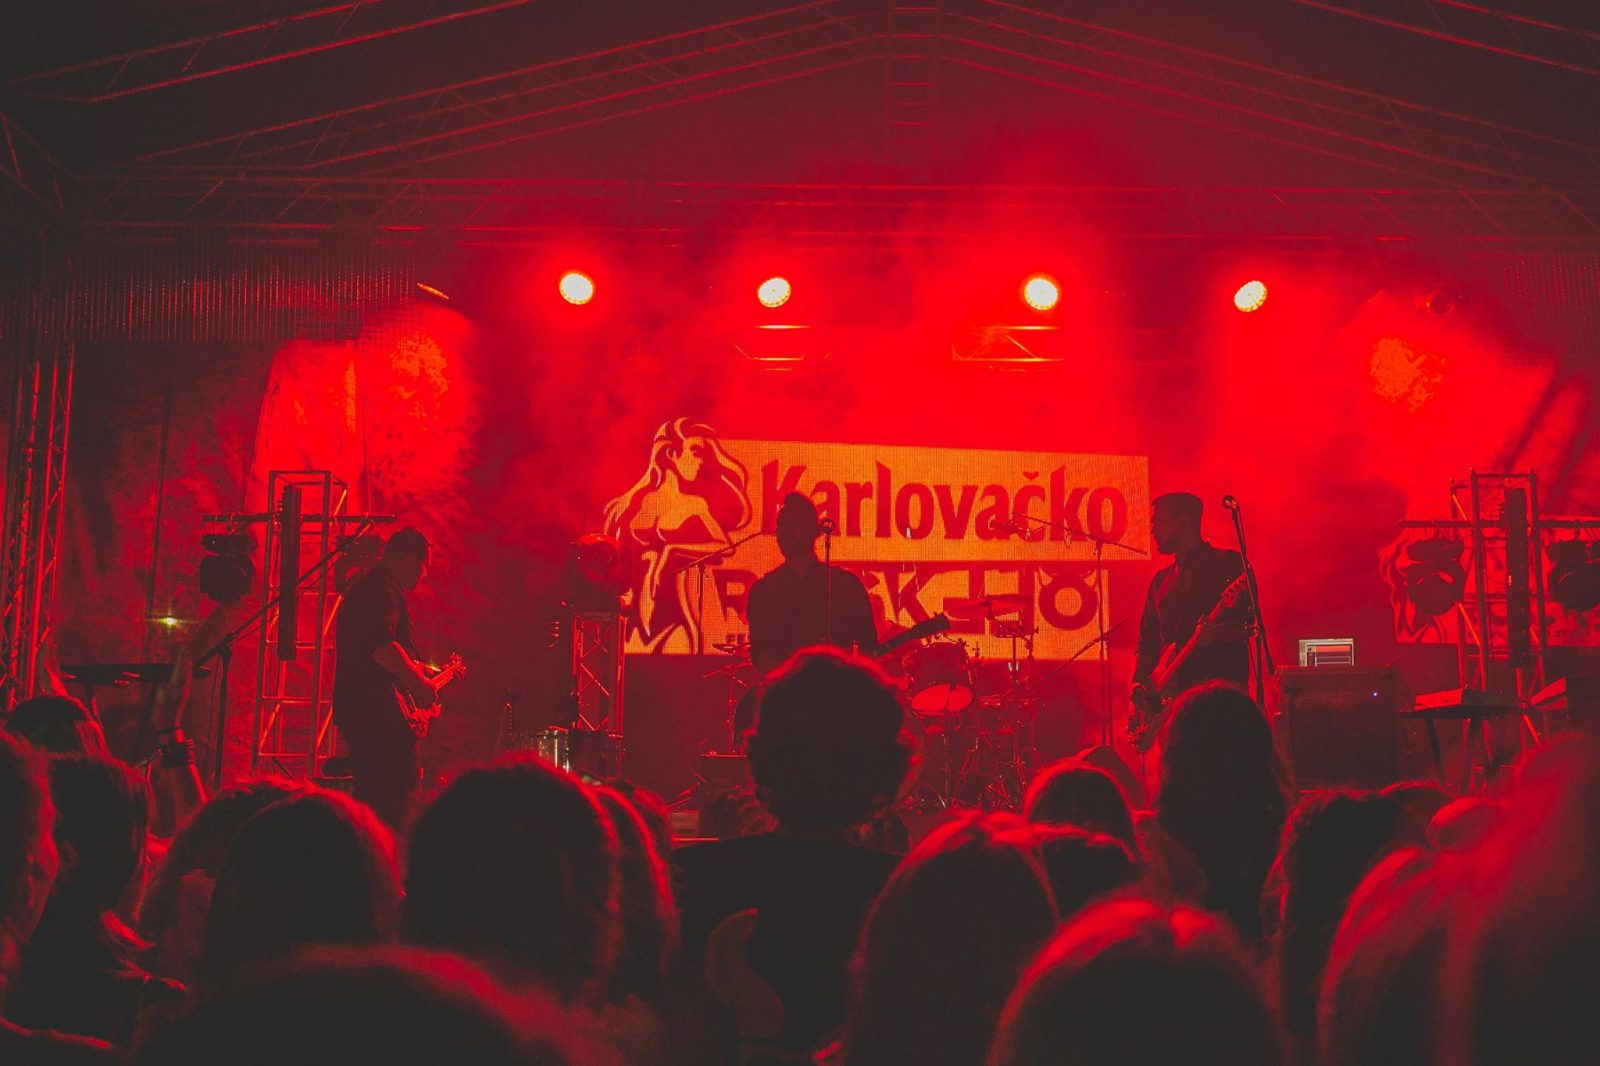 Photo: Karlovacko RockOff official